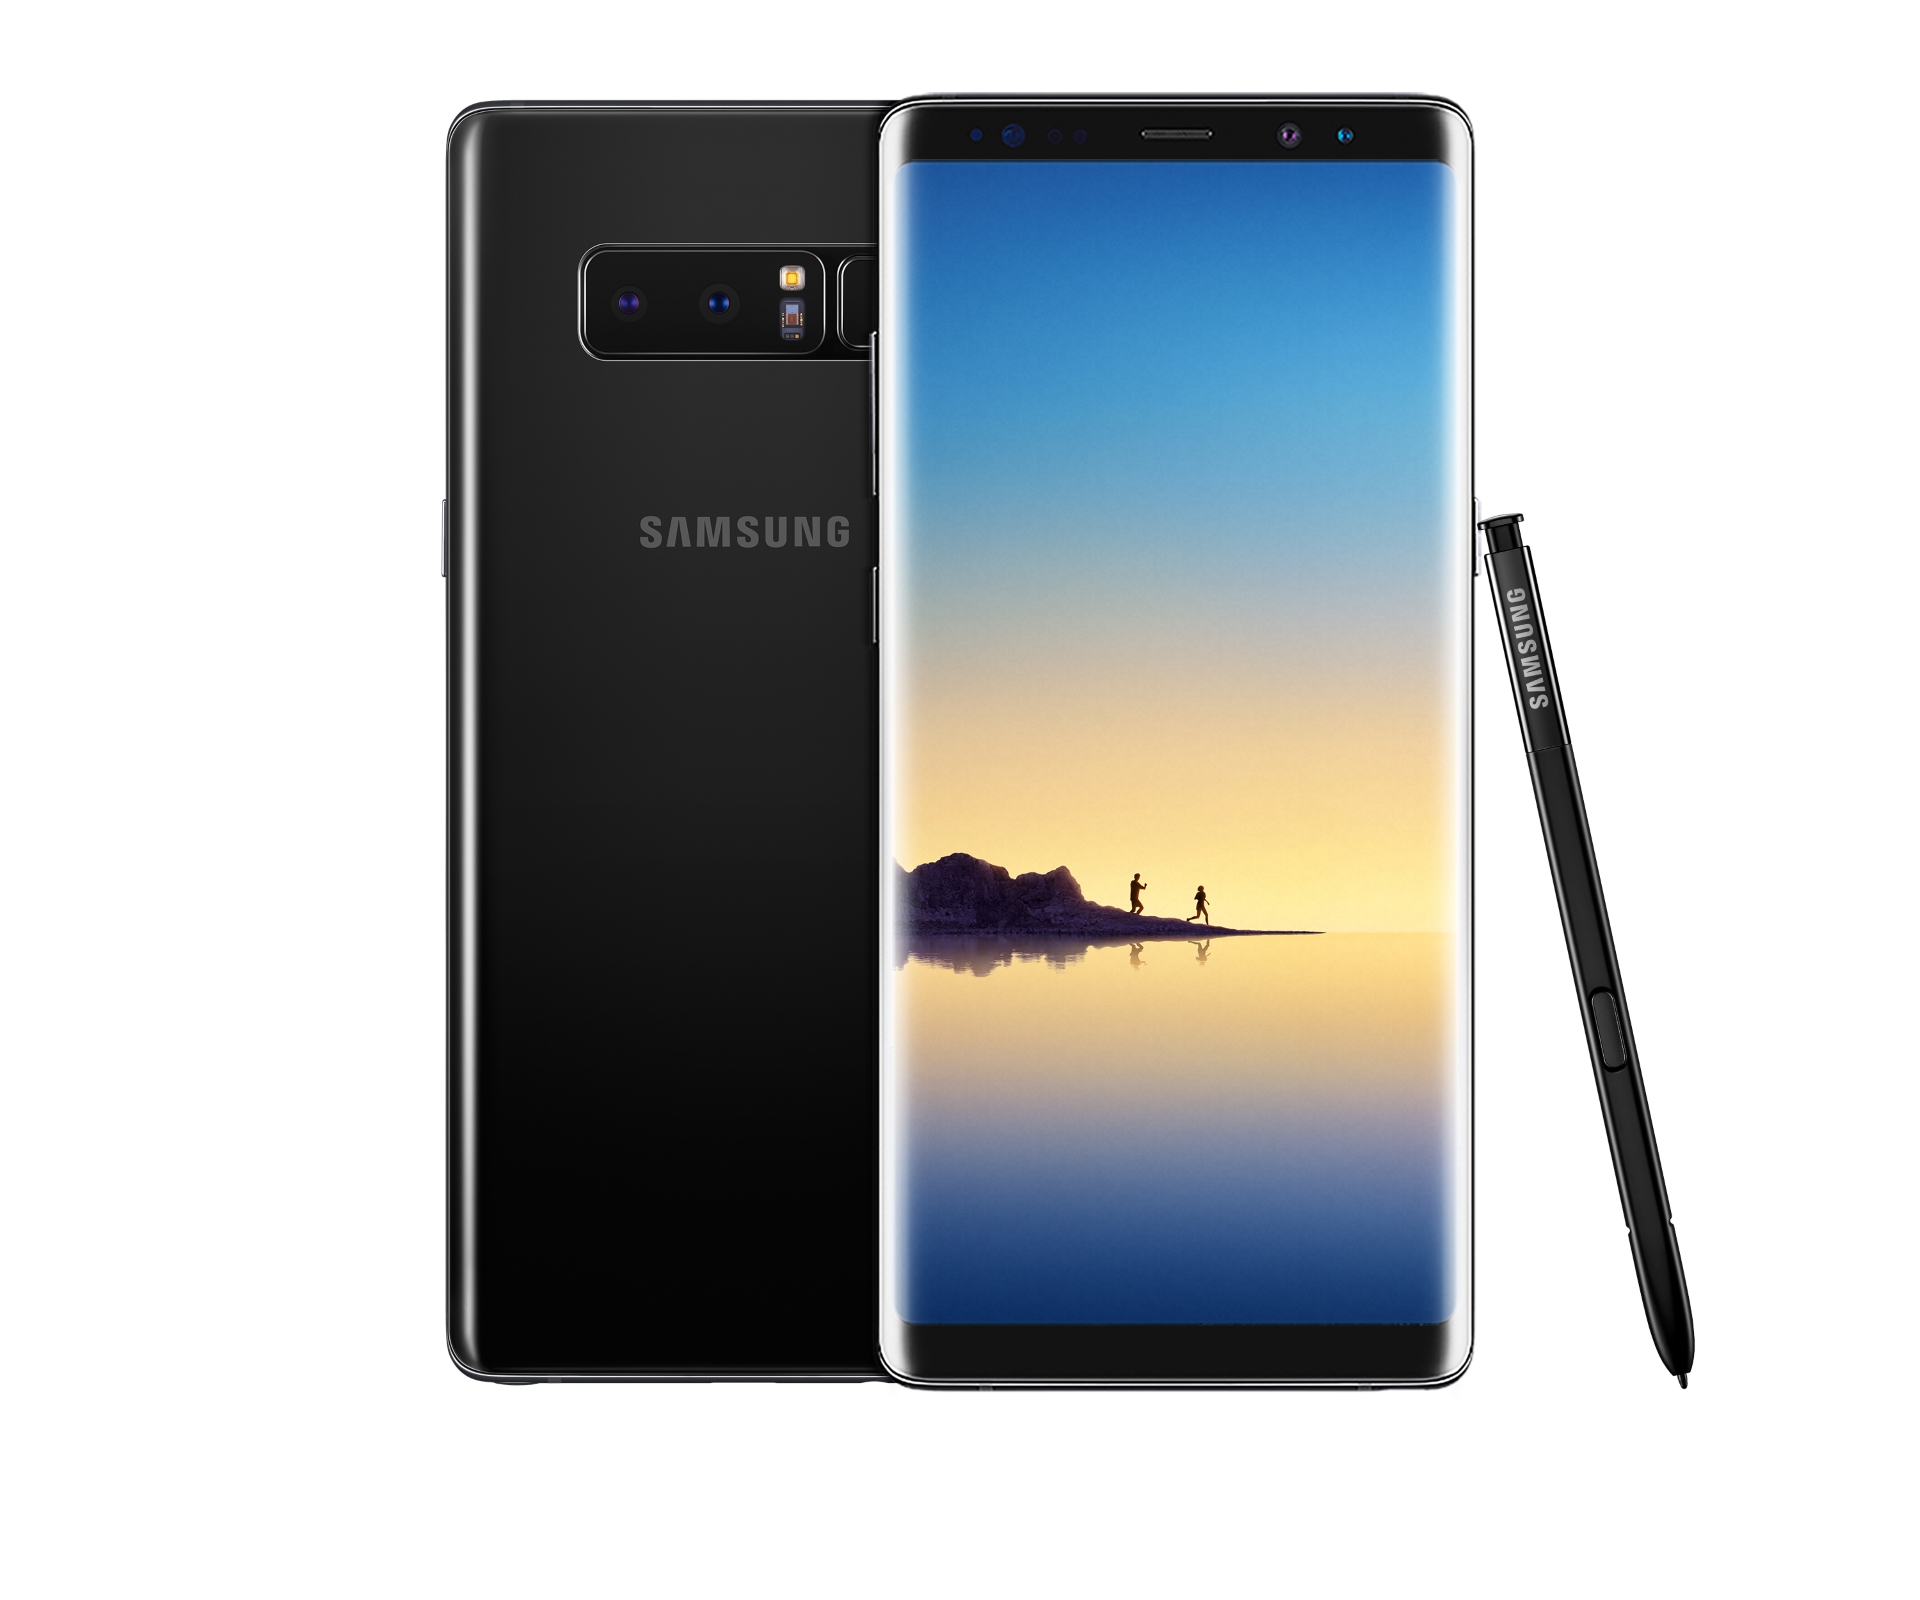 geolocalisation portable samsung note 8